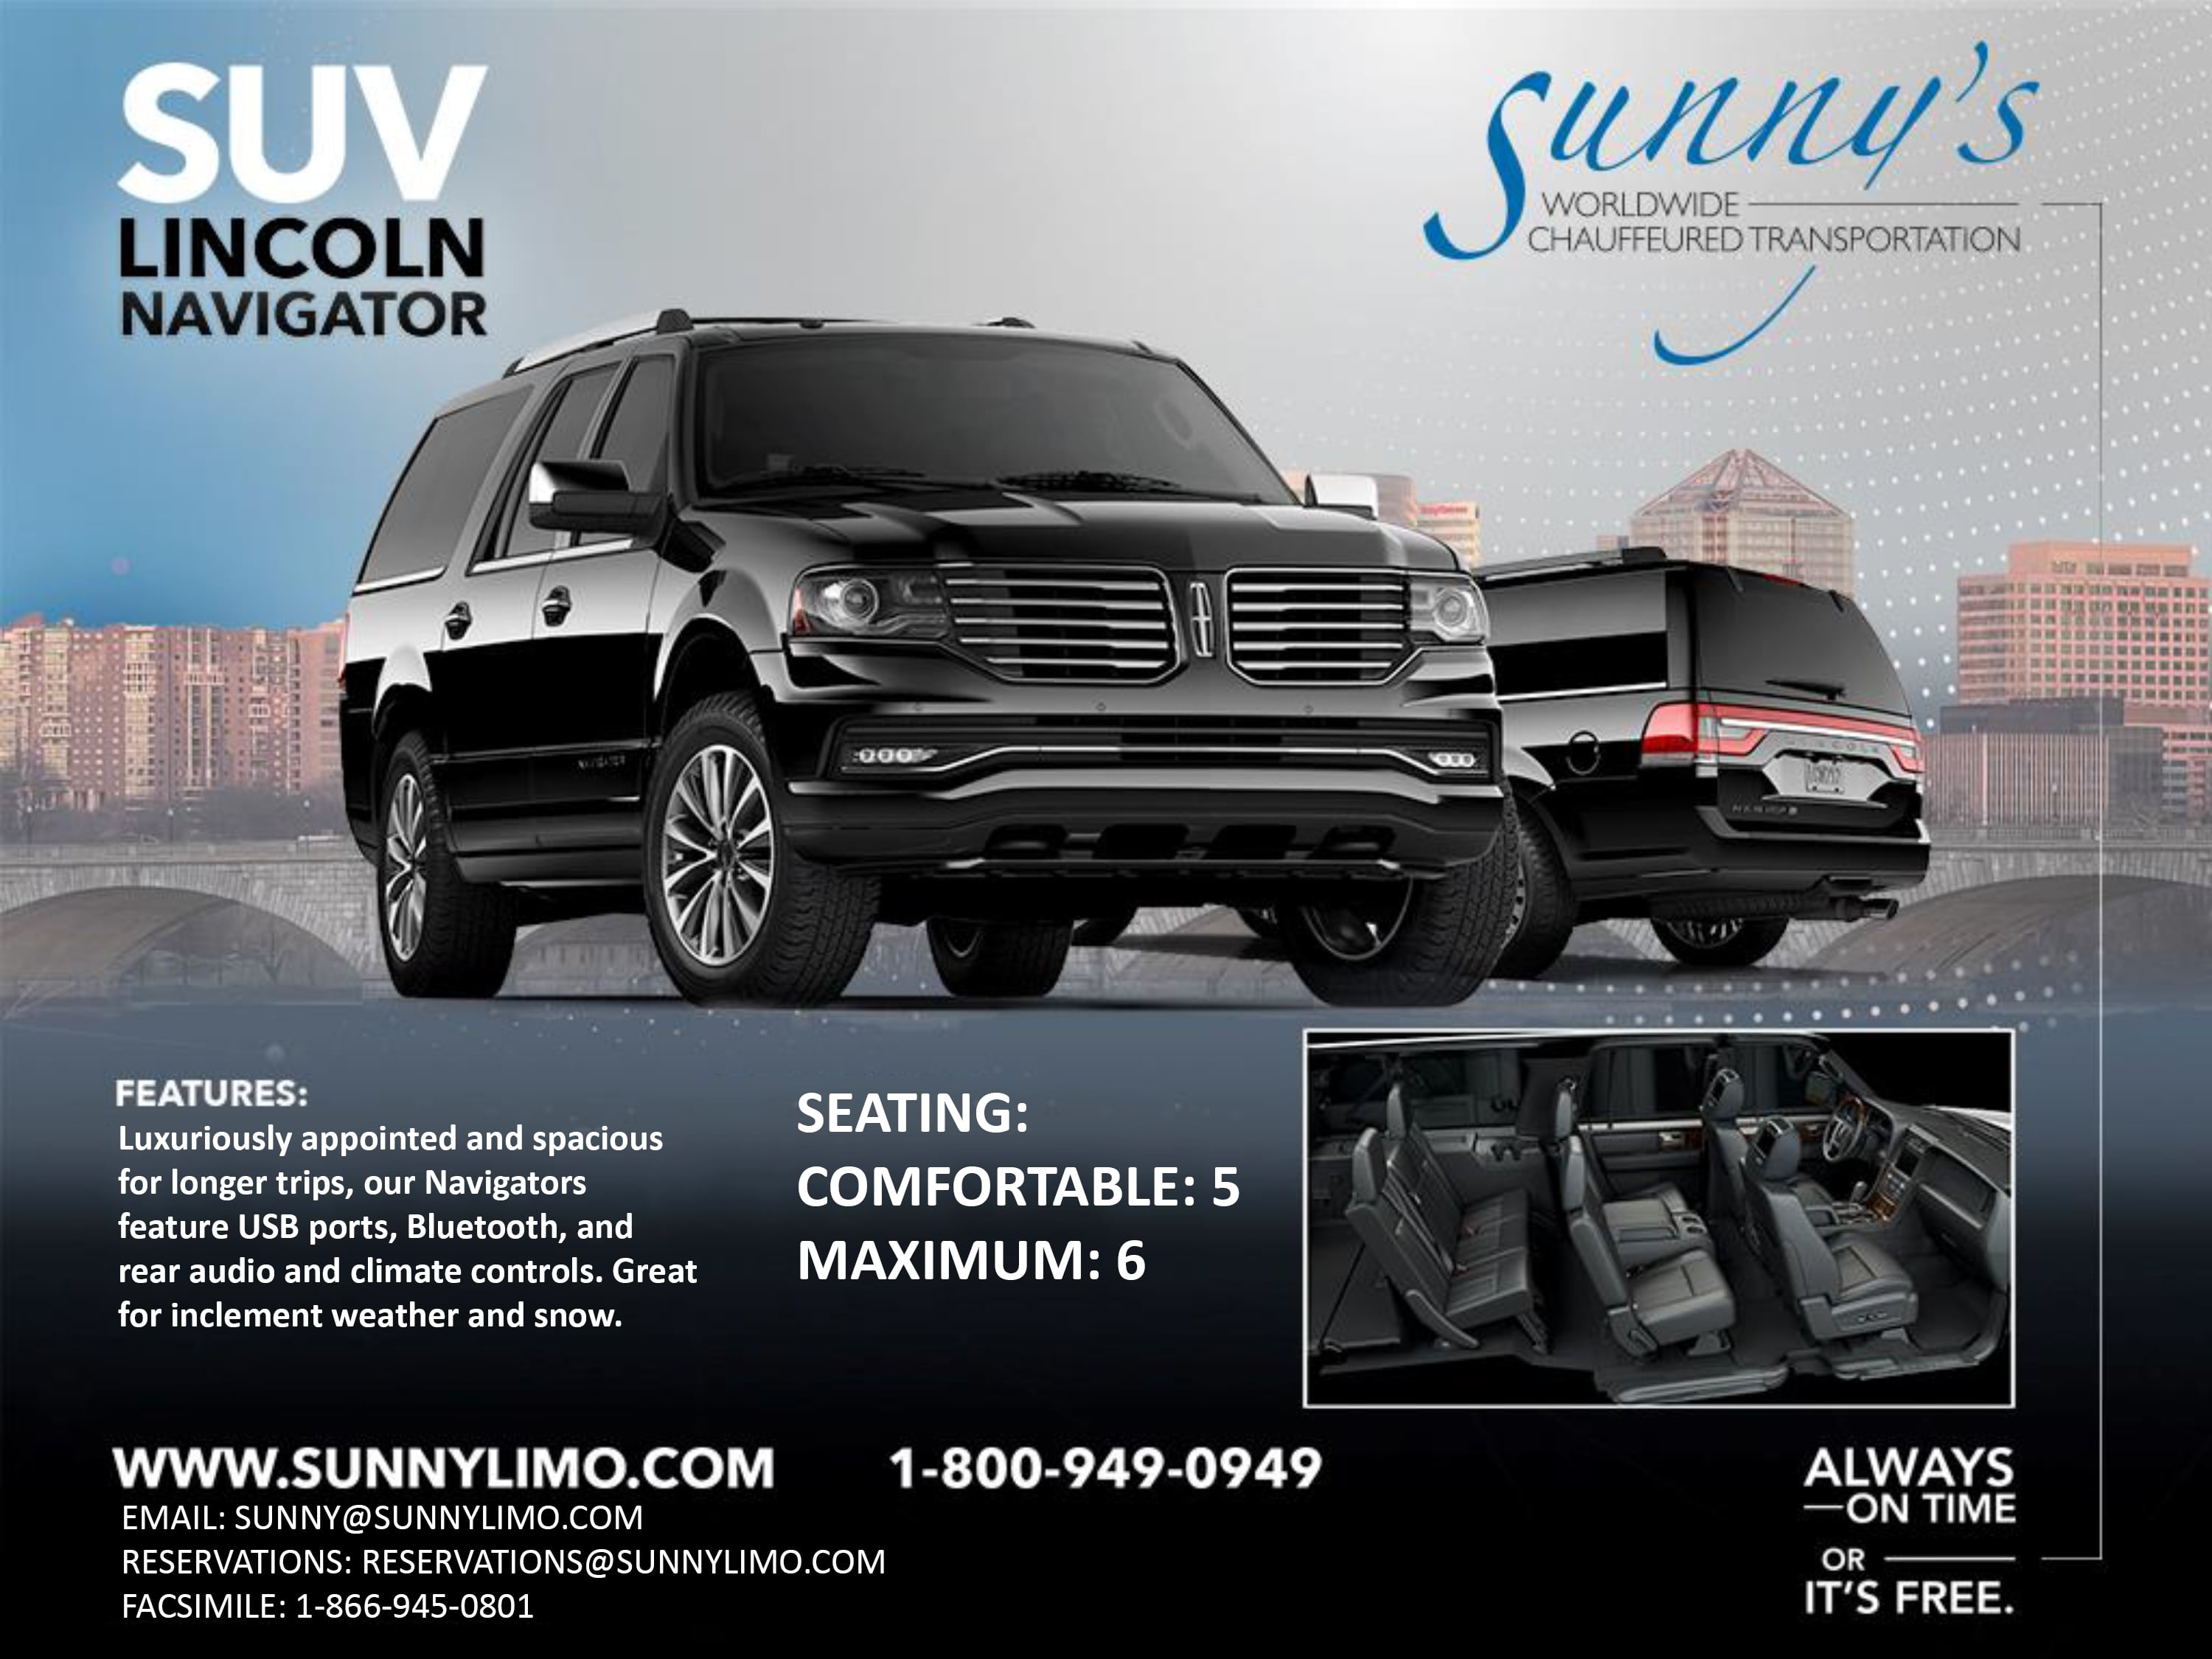 Sunny\'s Worldwide Chauffeured Transportation